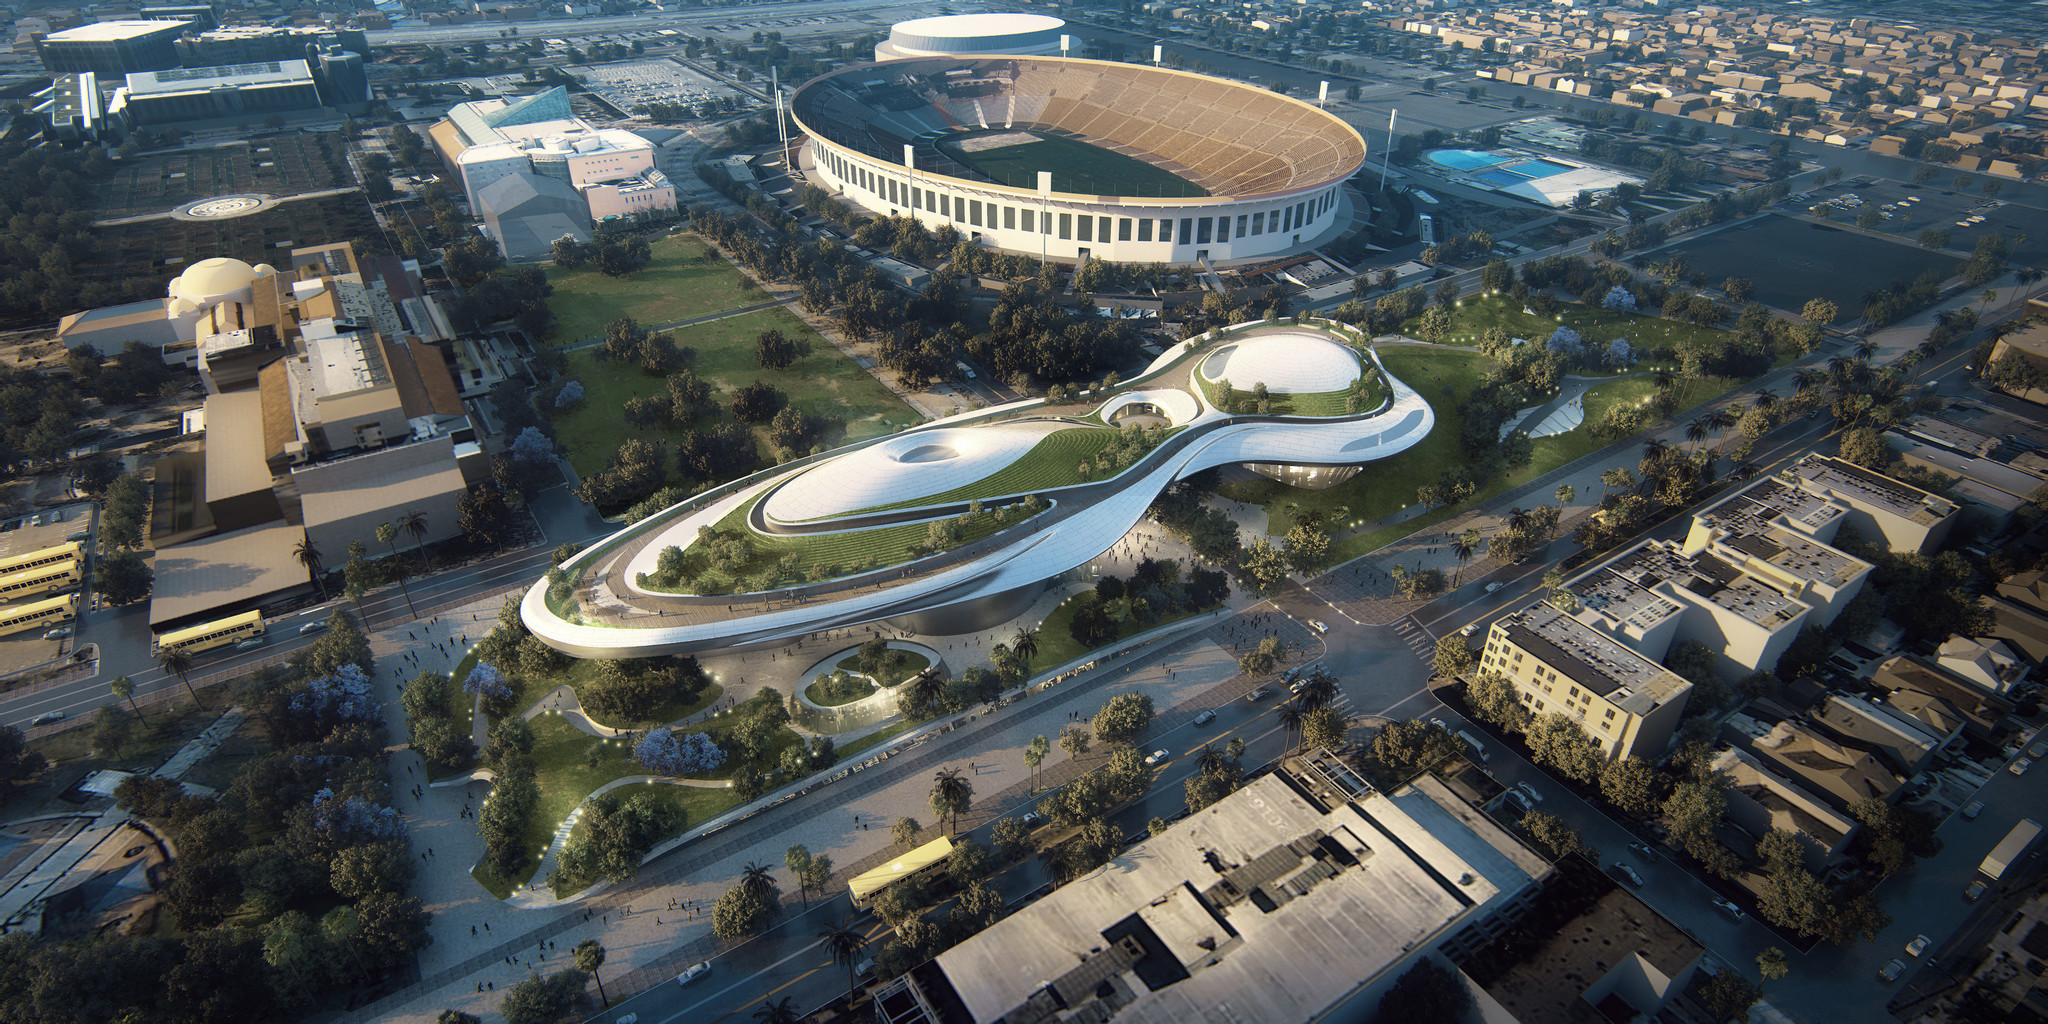 Proposal for Lucas Museum of Narrative Art in Exposition Park